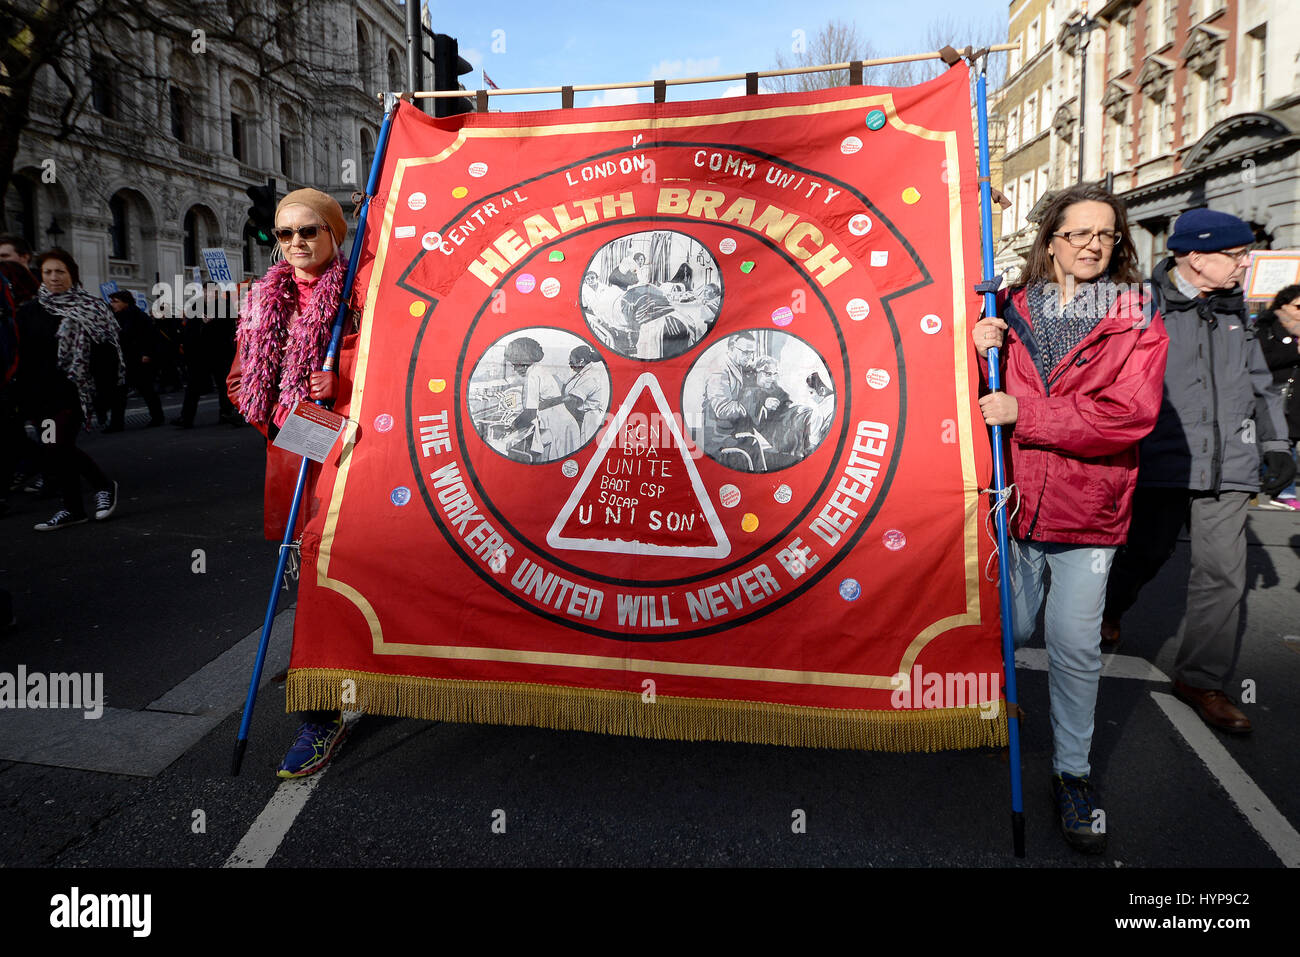 Central London Community Health Branch banner with the slogan The Workers United Will Never Be Defeated during NHS - Stock Image